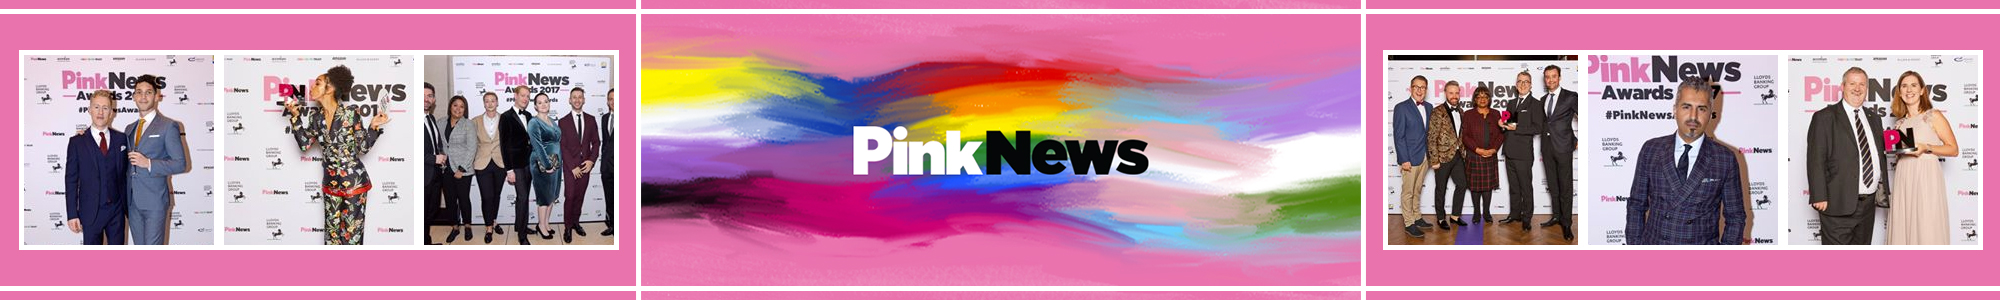 PinkNews Media Group